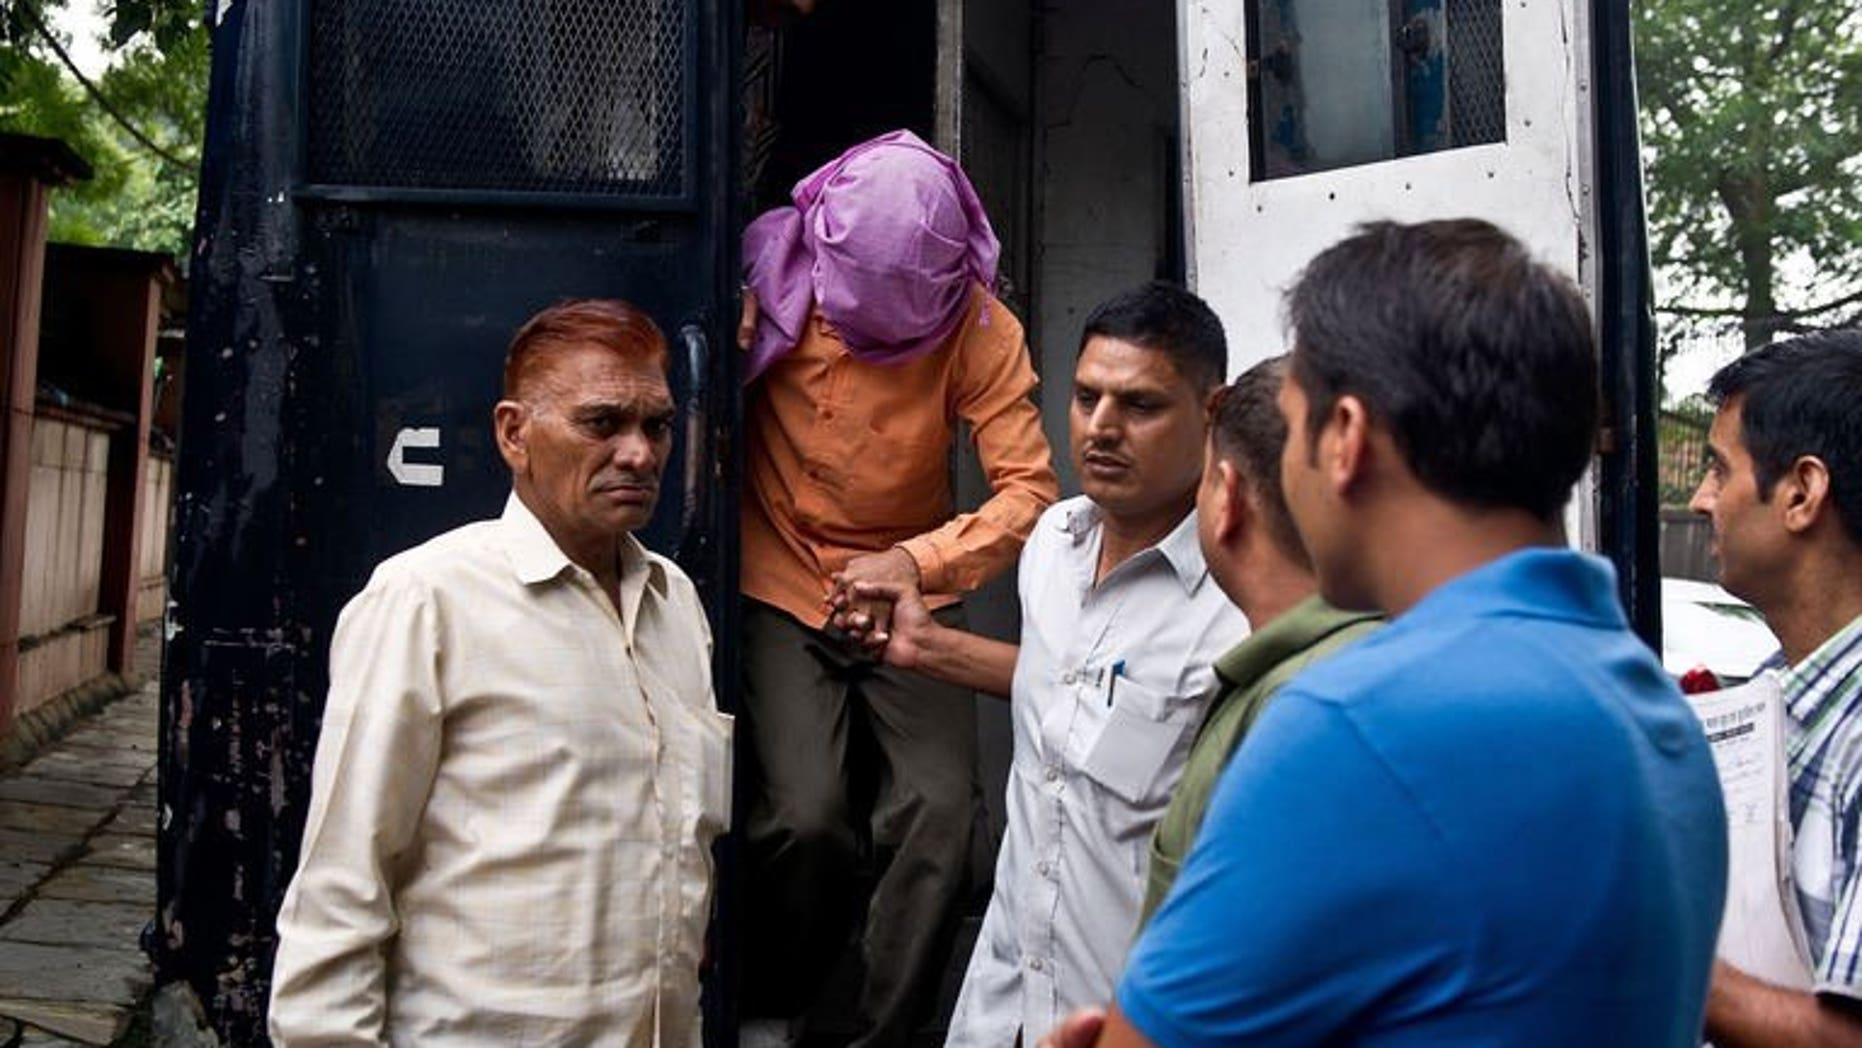 Indian policemen escort the juvenile accused (2nd L) in the December 2012 gang-rape of a student, from a police vehicle outside the juvenile court in New Delhi on August 19, 2013. The trials of five suspects for the fatal gang-rape of an Indian student on a bus last December moved towards their conclusions on Thursday, with the first verdict set for August 31.